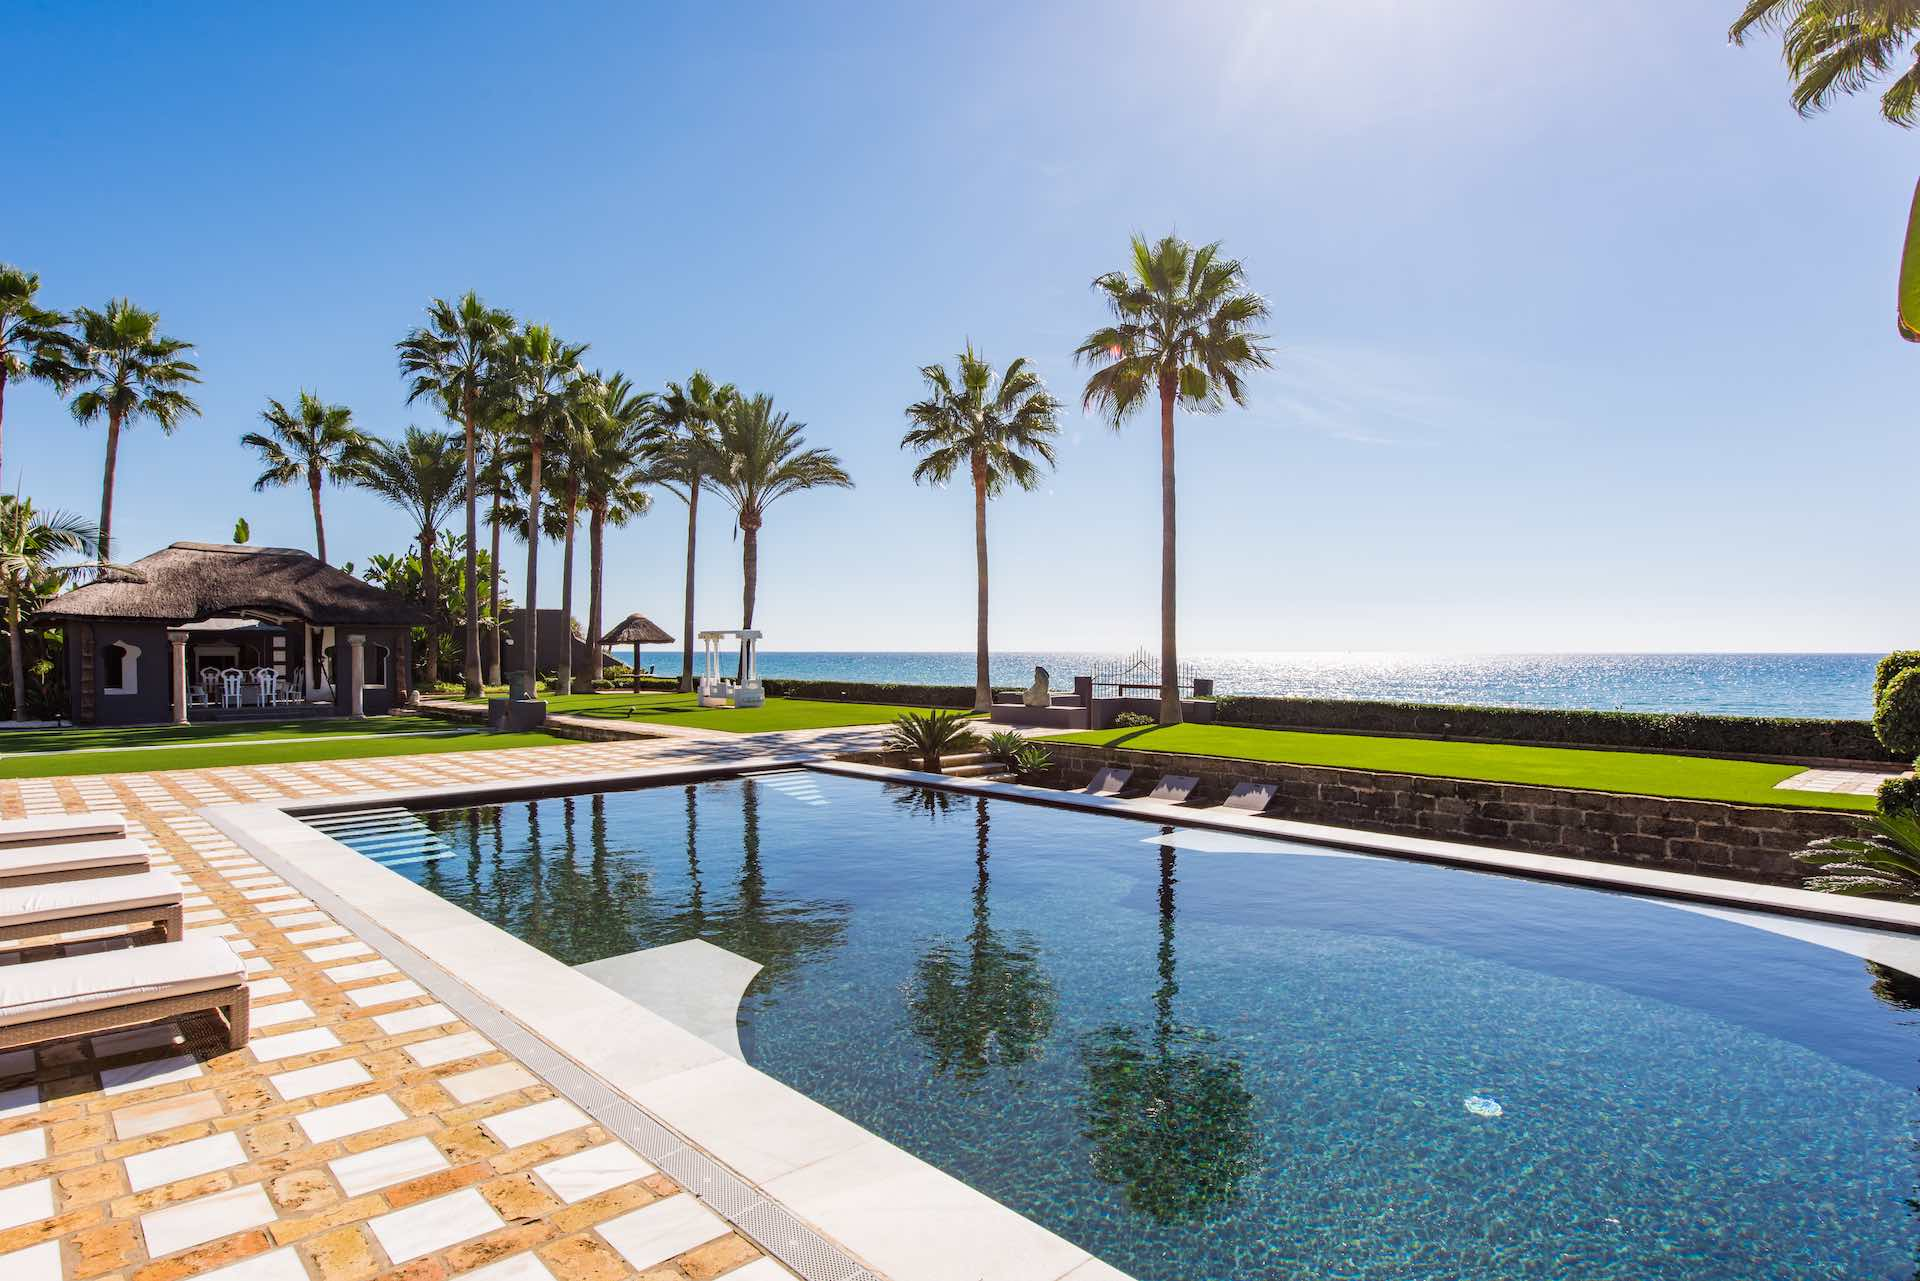 Property for Sale in Los Monteros - Callum Swan Realty